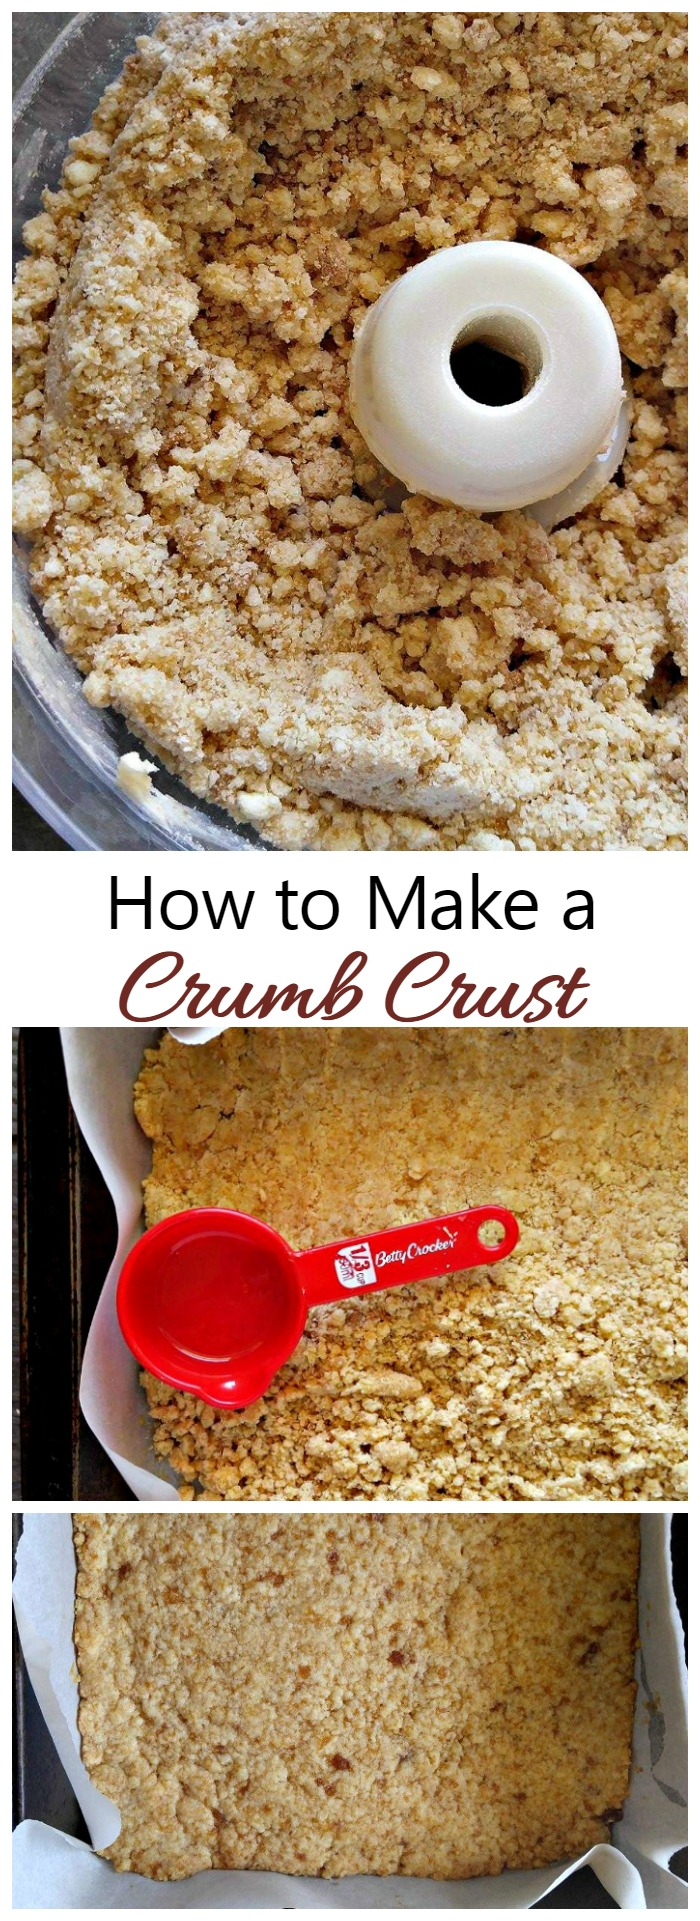 How to Make a Crumb Crust